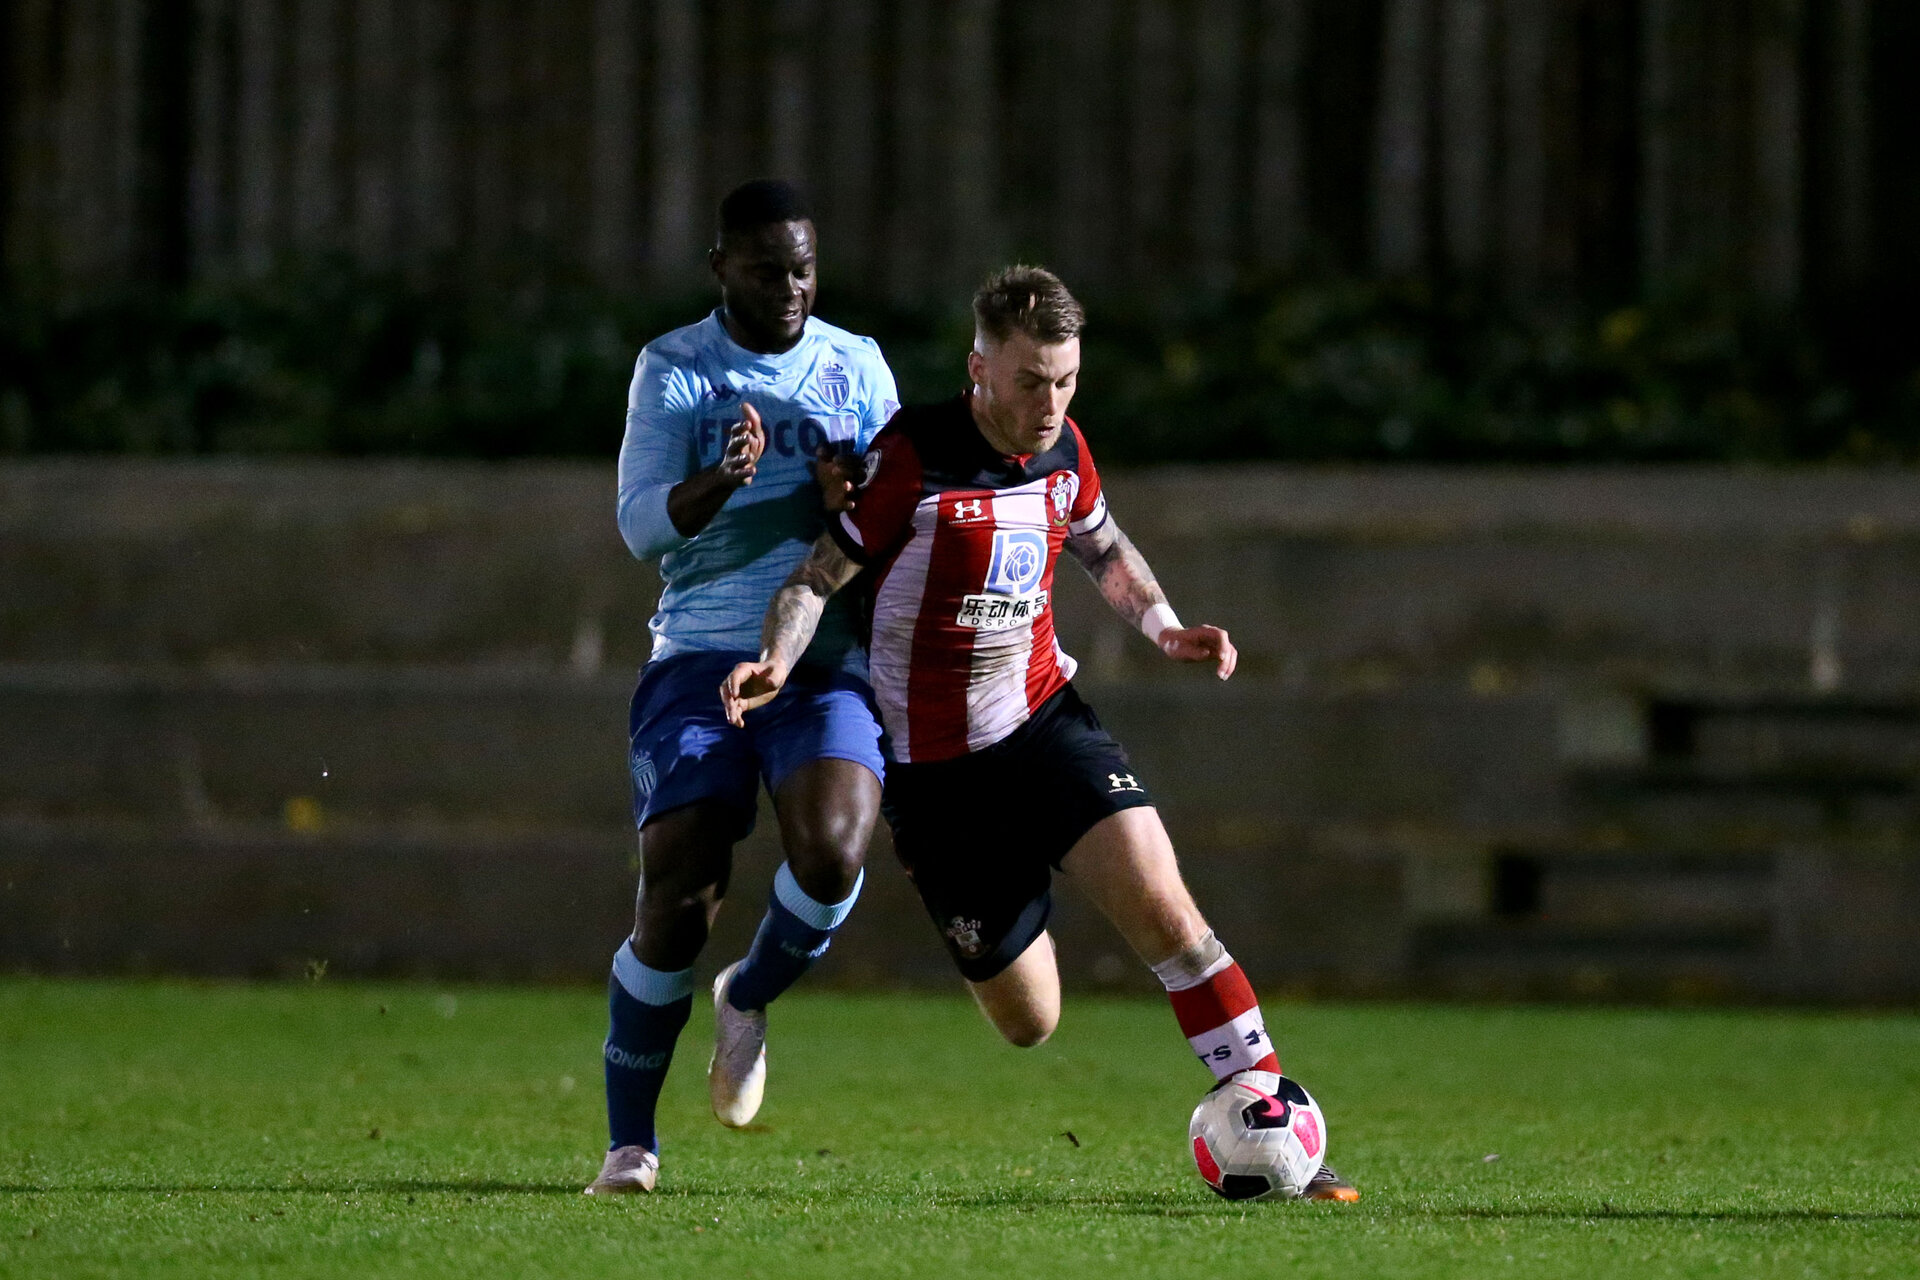 LONDON, ENGLAND - November 27: Callum Slattery of Southampton U23 during Premier League International Cup match between Southampton and Monaco at Staplewood Training Center, Southampton on November 27 2019 in London England (Photo by Isabelle Field/Southampton FC via Getty Images)